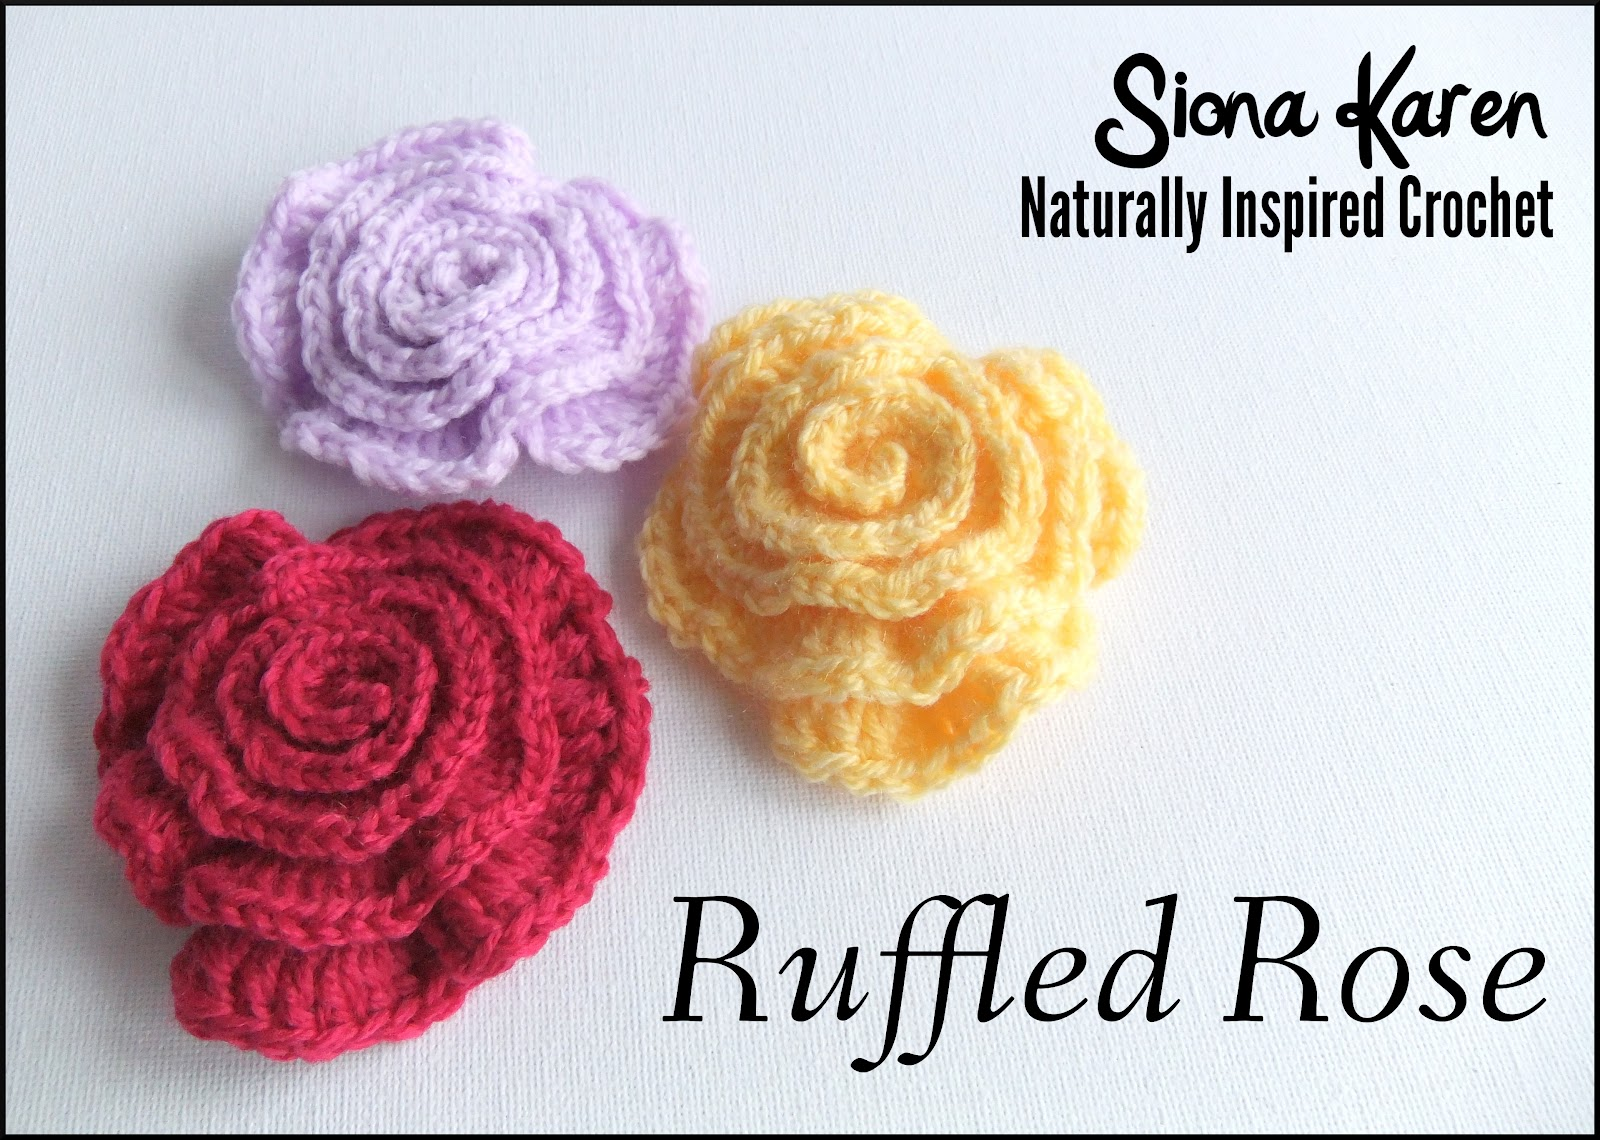 Crochet Patterns Roses Free : Labels: Crochet , Flowers & Leaves , Free Patterns , Patterns